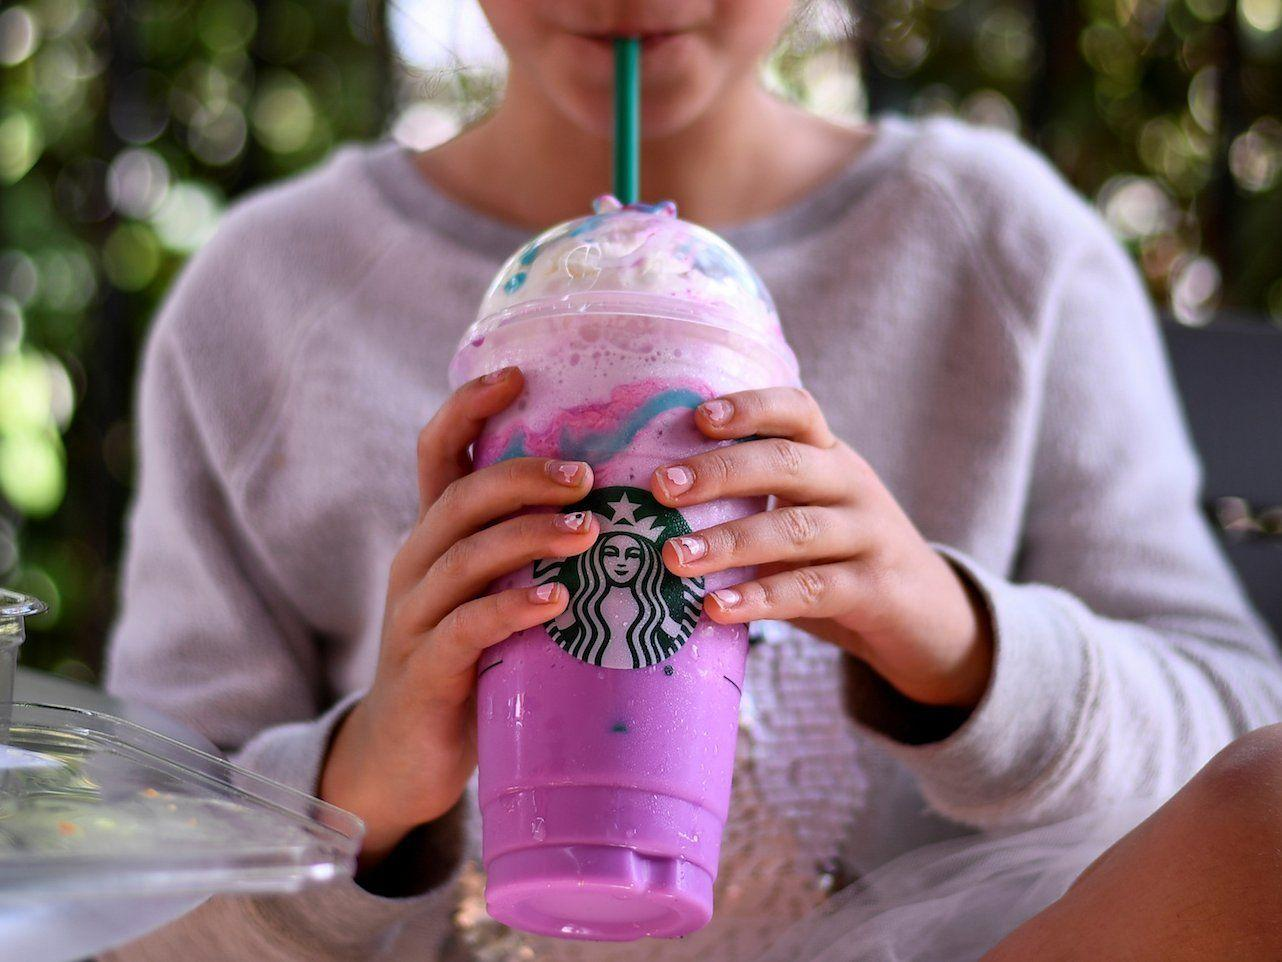 Crystal Ball Frappuccino is Starbucks' successor to the Unicorn